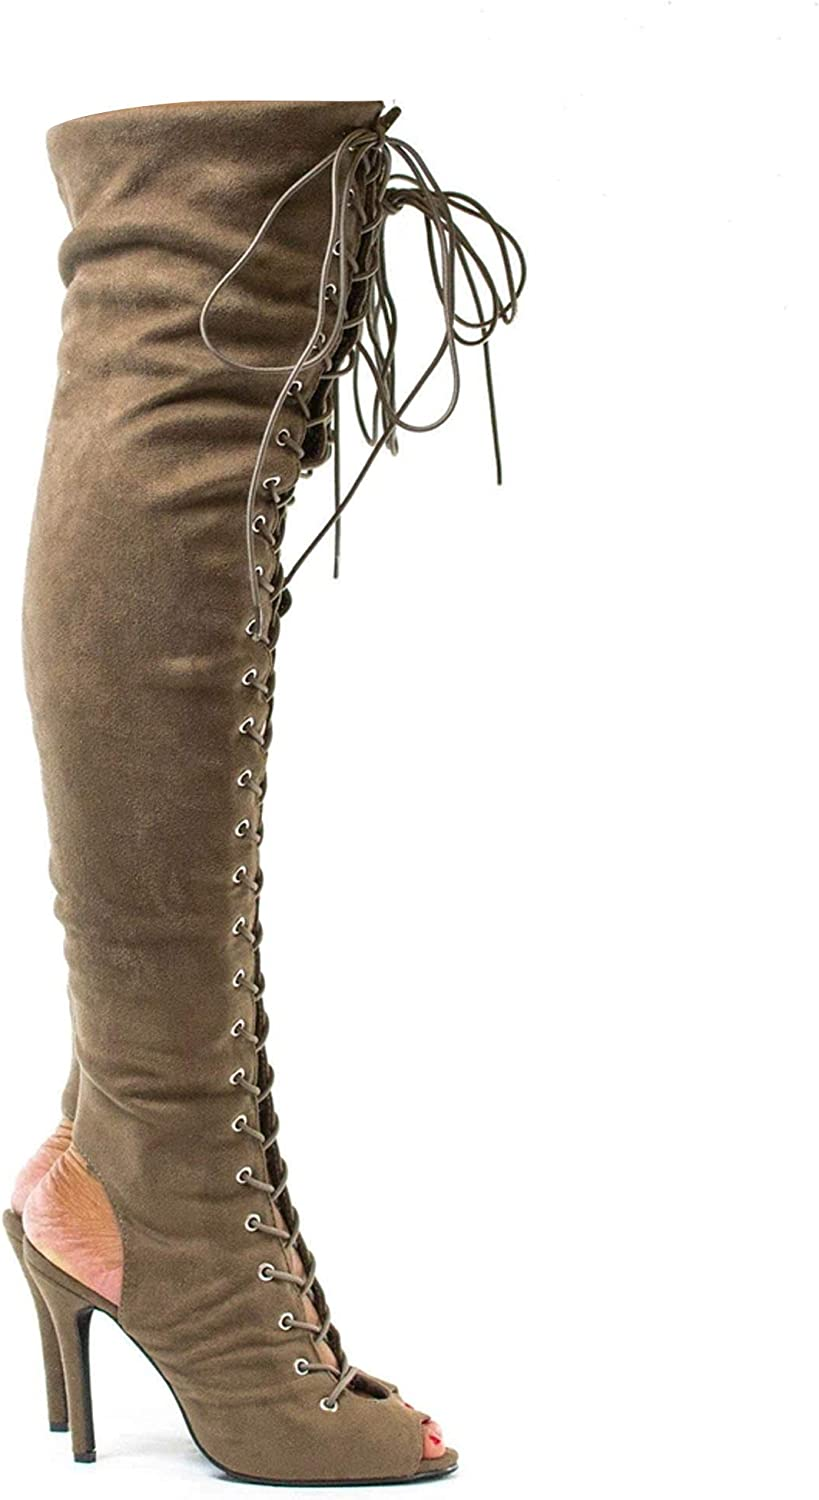 Details about  /Women Over The Knee Boots Stiletto High Heels Peep Toe Black Night Club Shoes